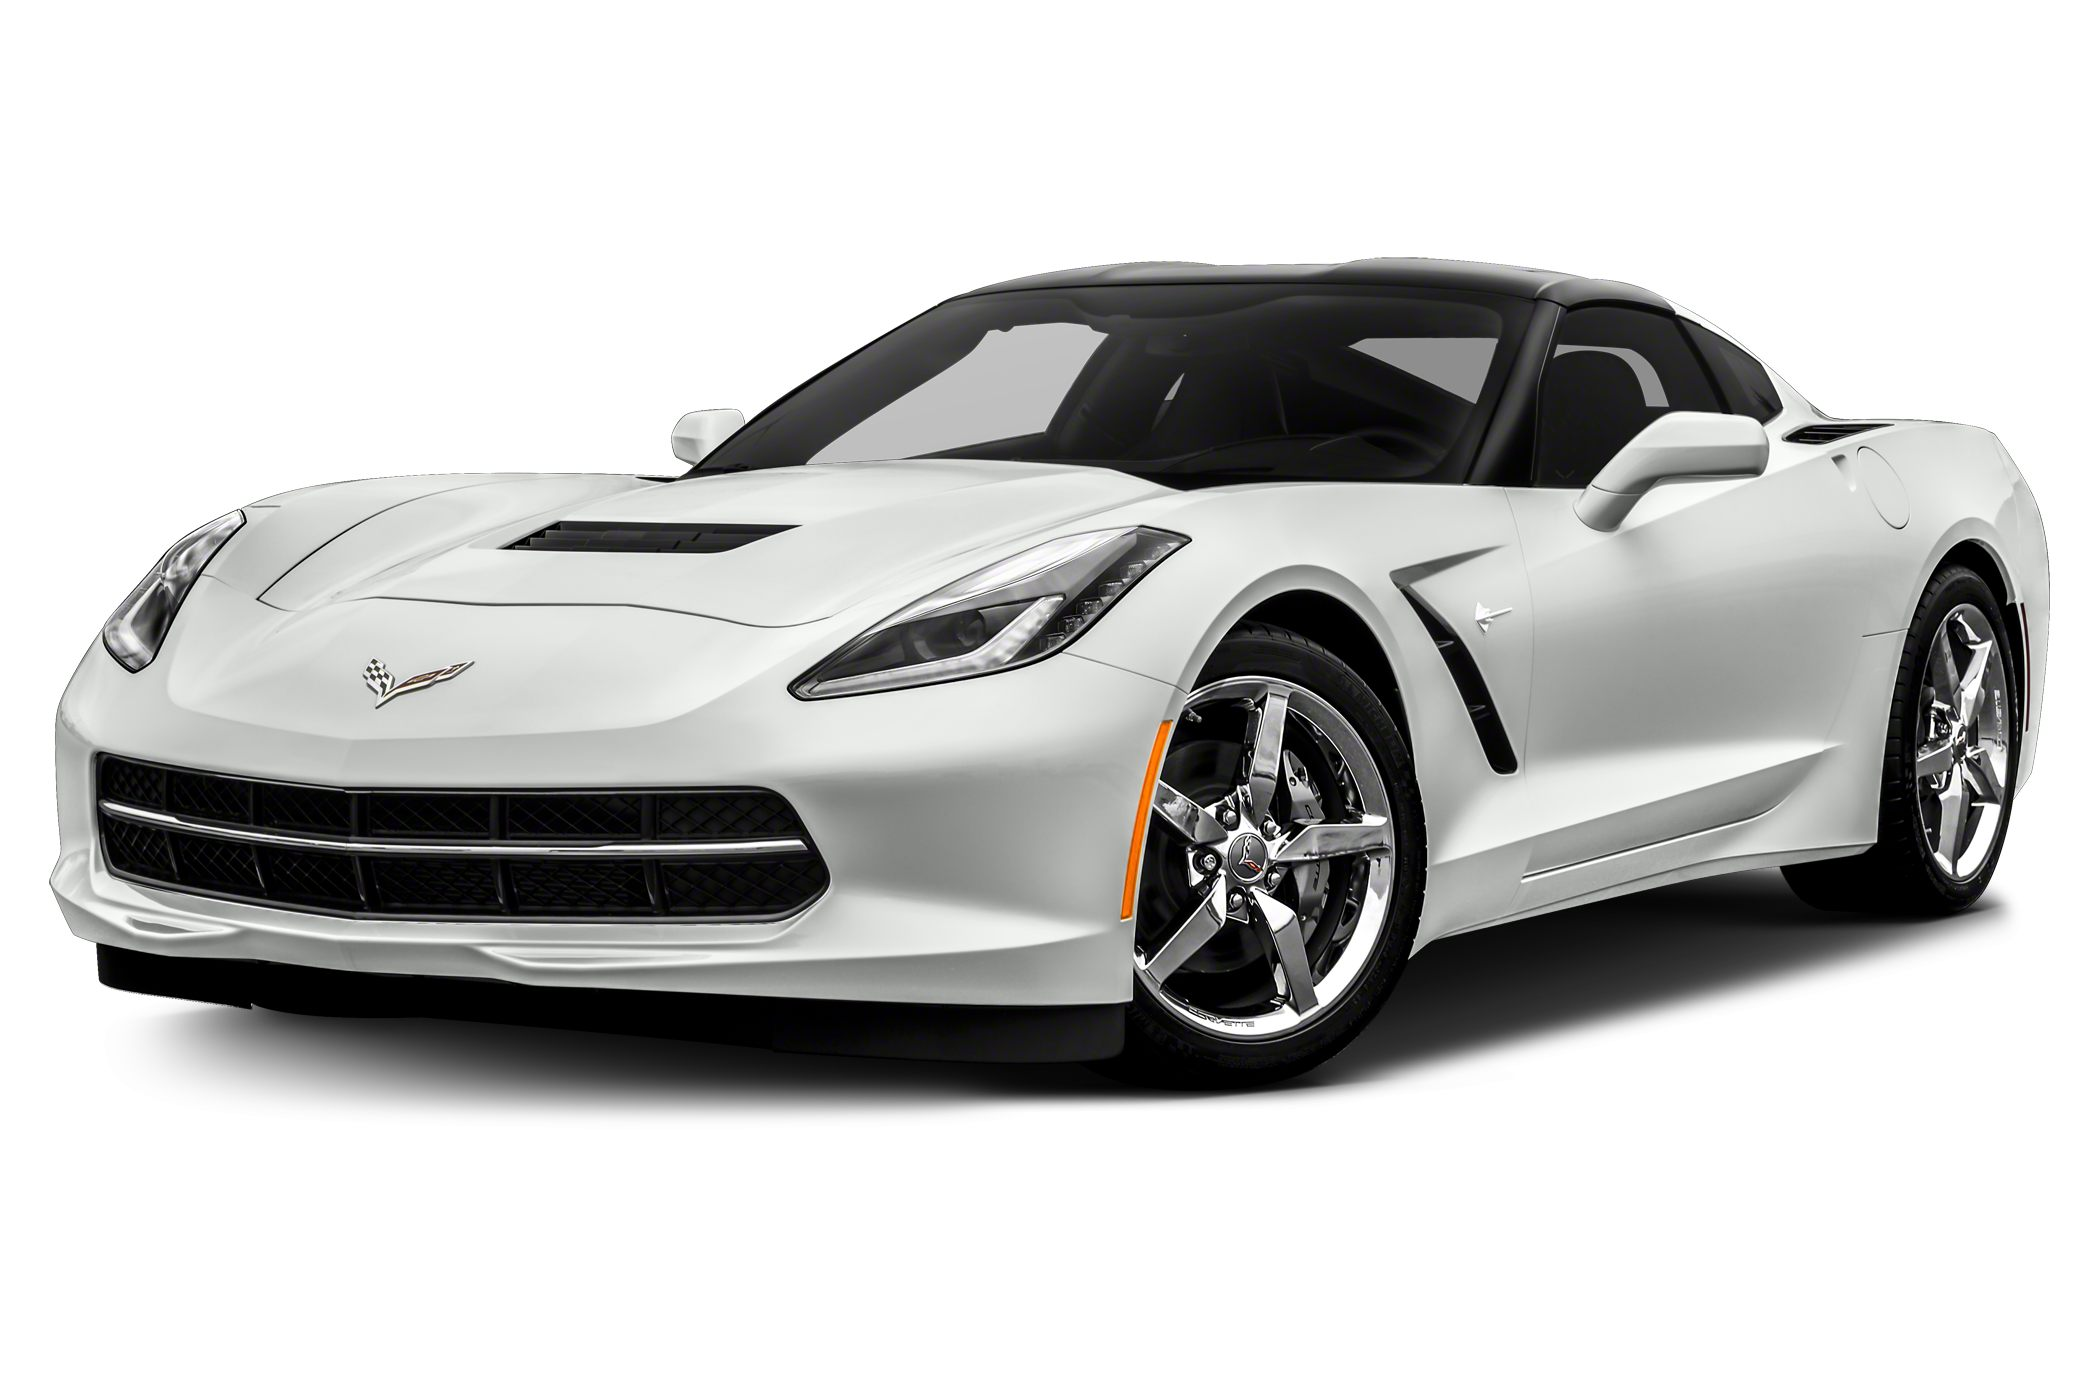 2015 Chevy Corvette Z06 to produce 620 hp, 650 lb-ft?